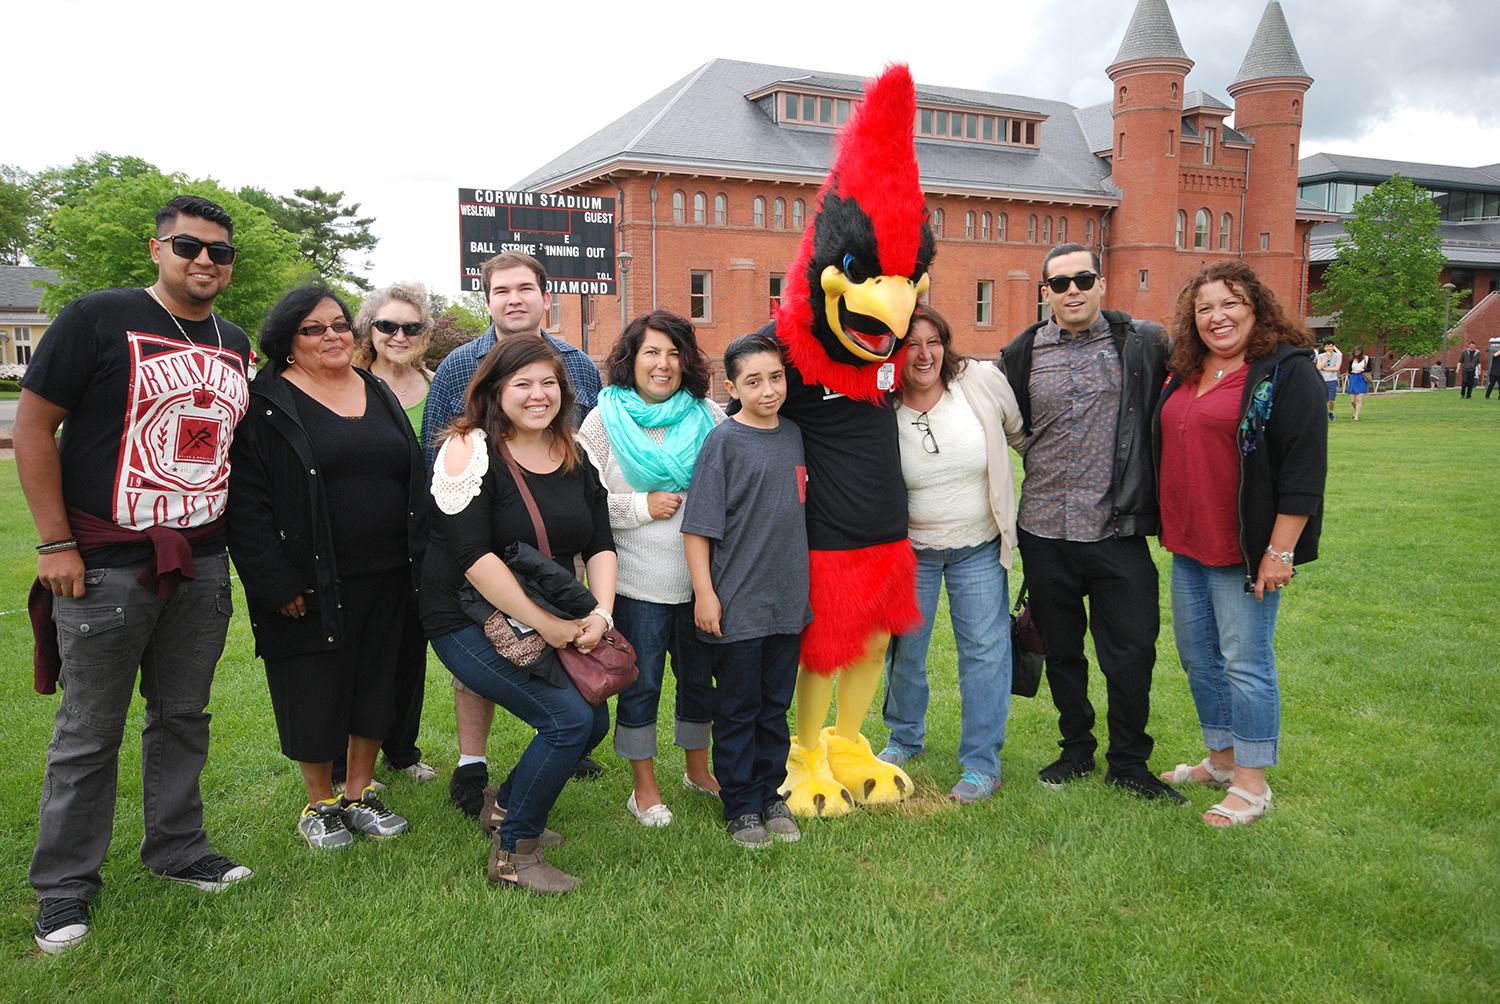 Family with cardinal